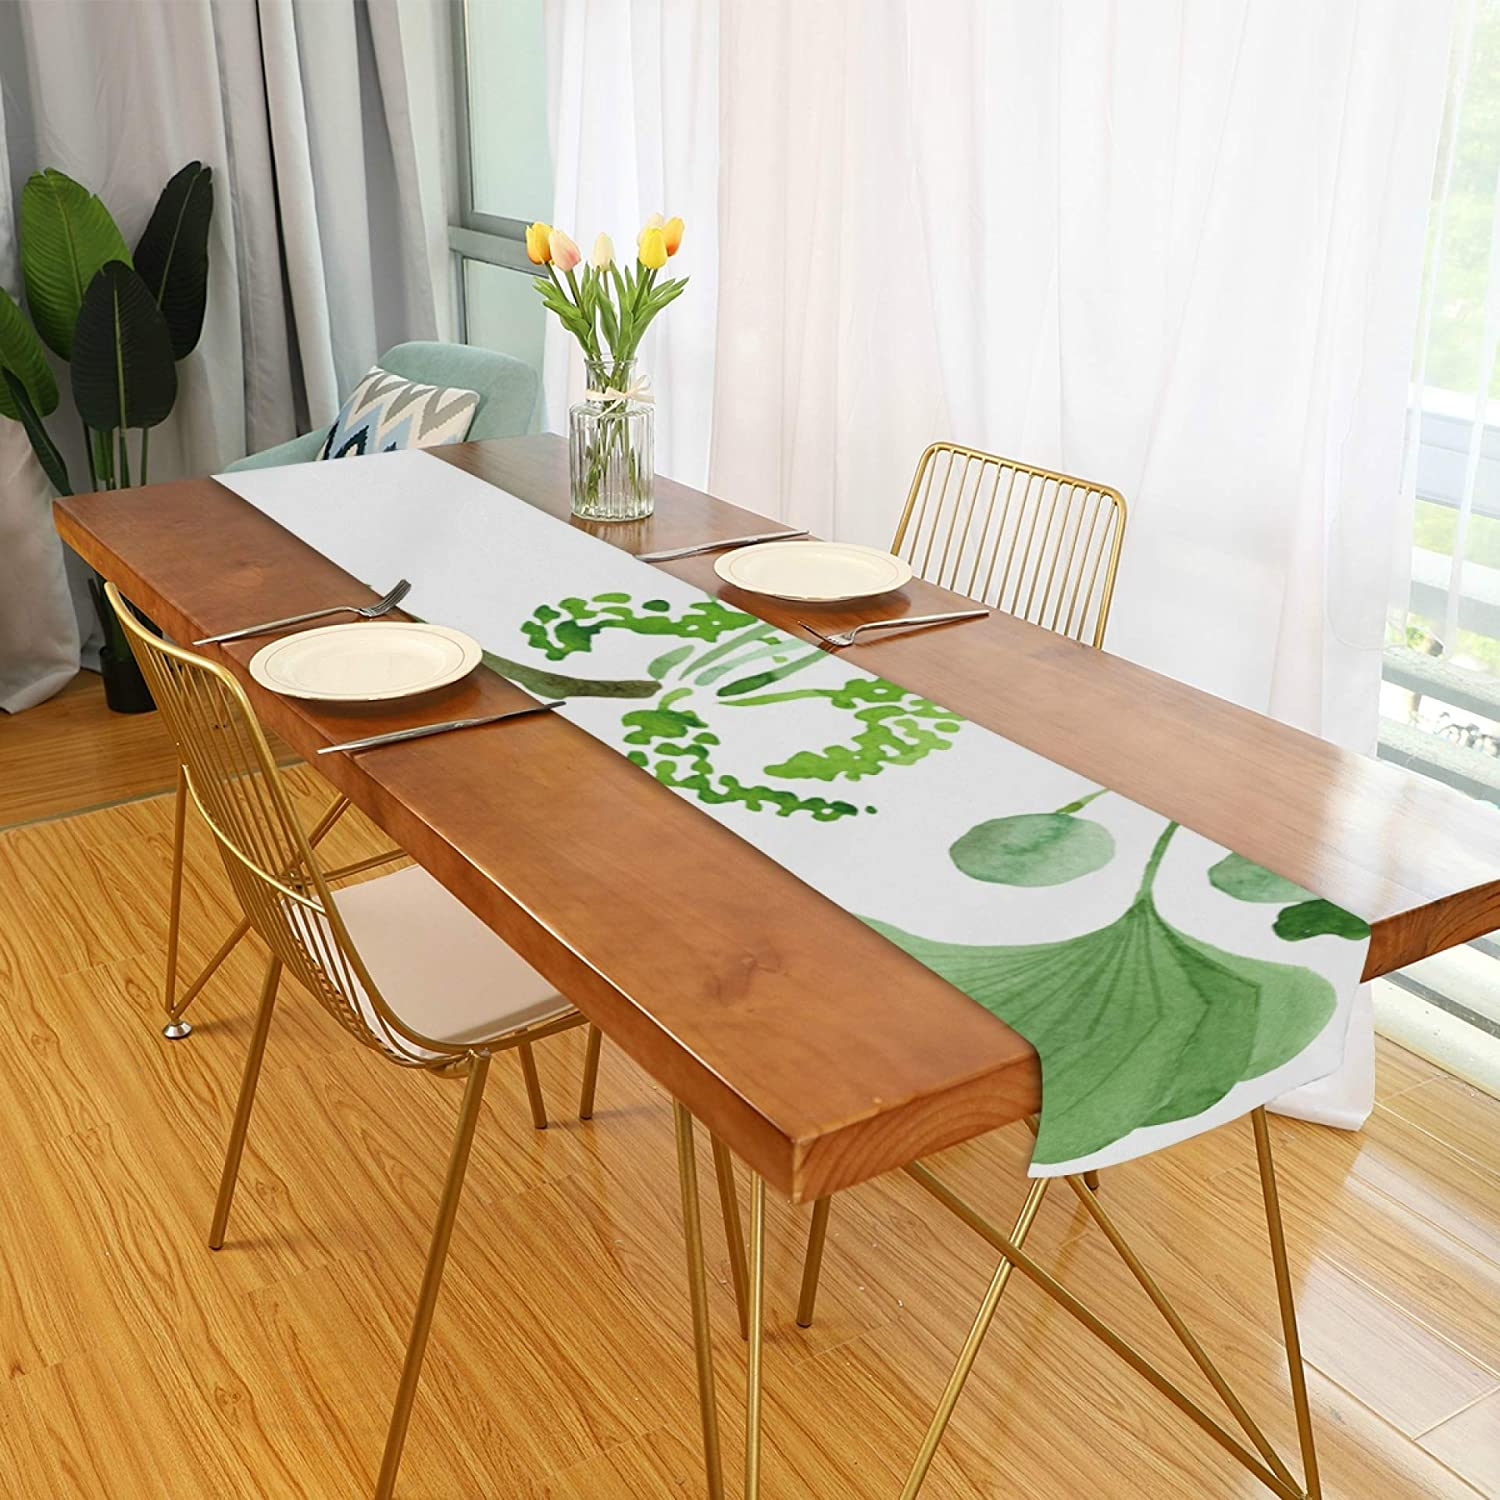 Amazon Com Farmhouse Table Runner For Home Kitchen Dining Table Coffee Table Decor Table Runner Farmhouse Style Green Ginkgo Biloba Floral Botanical Flower Table Linens For Indoor Outdoor Everyday Uses 13x70in Home Kitchen